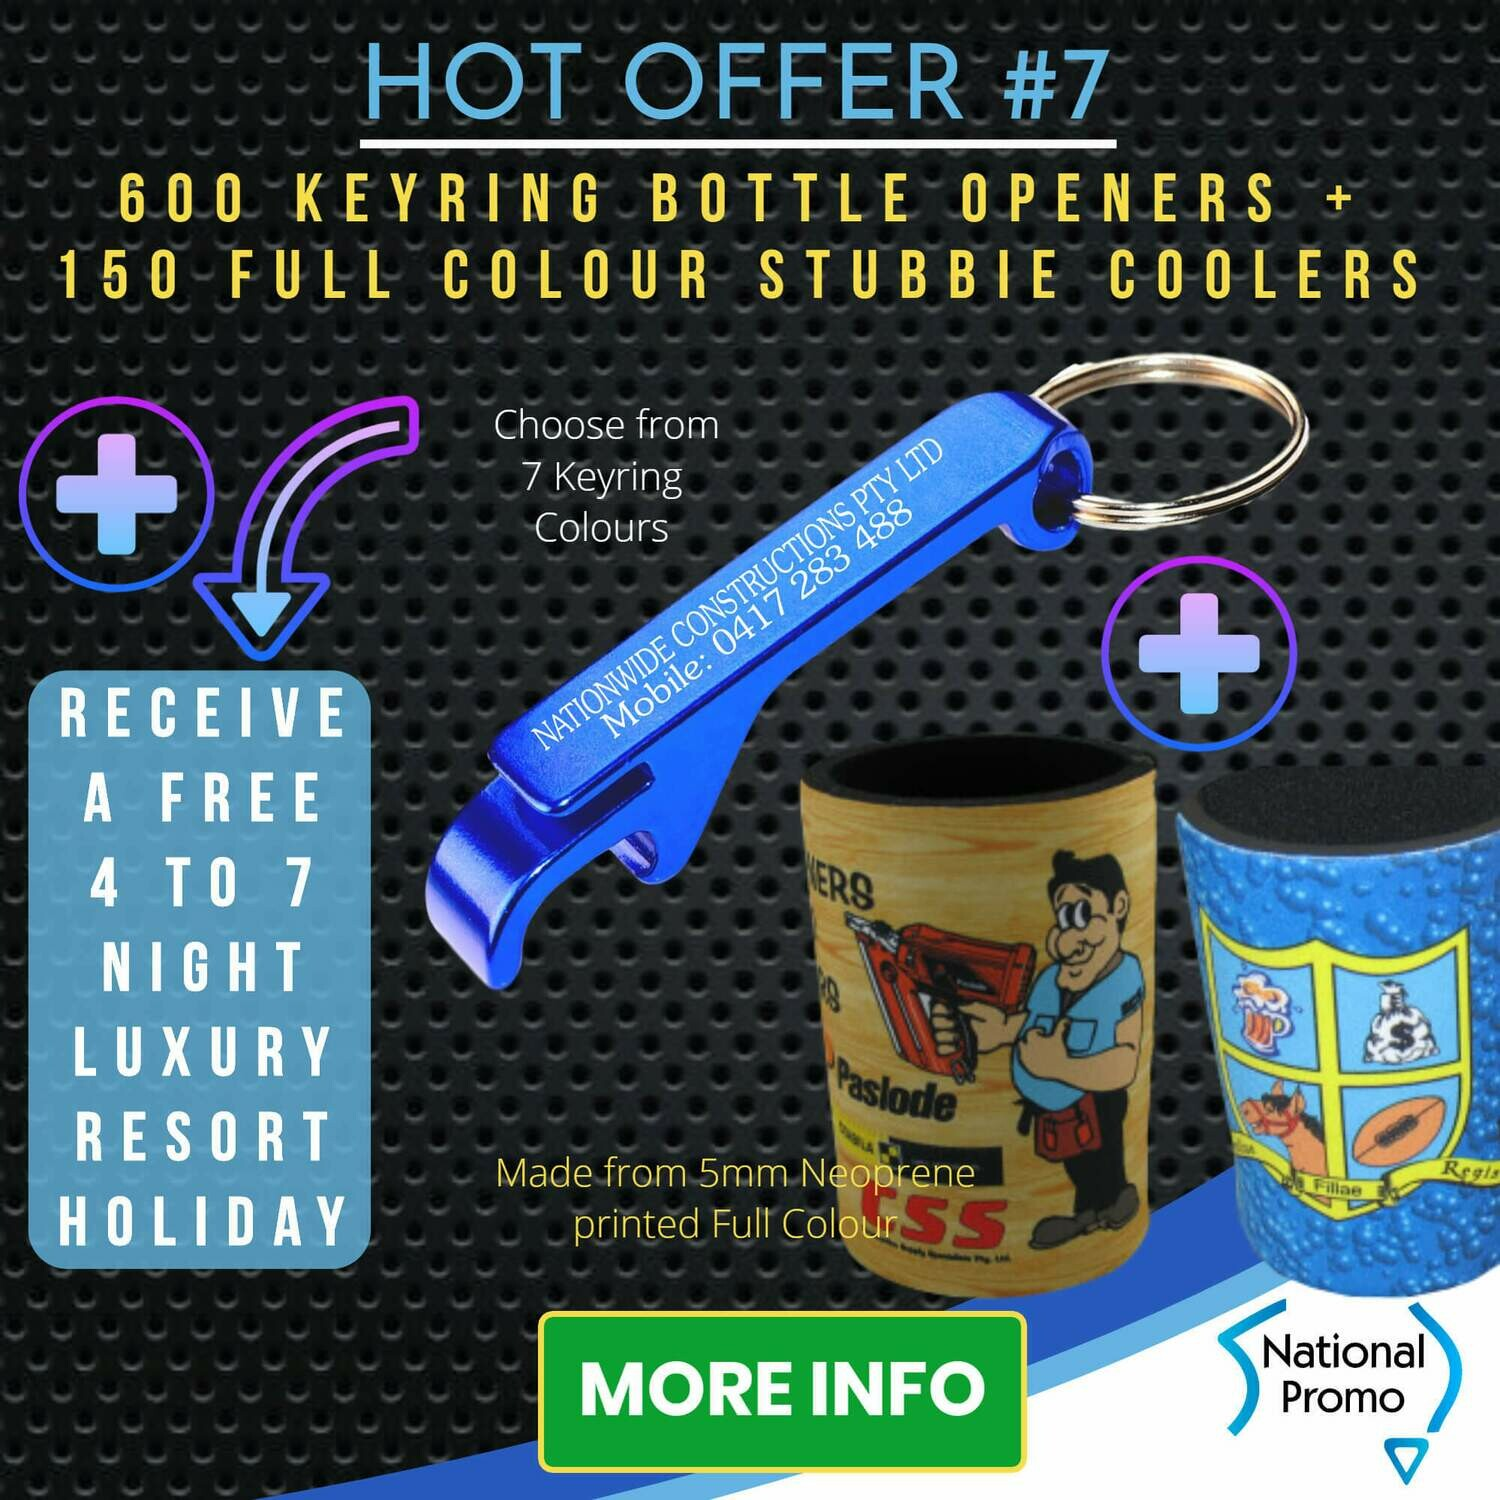 600 Engraved KEYRING OPENERS + 150 full colour STUBBY COOLERS + get a FREE HOLIDAY